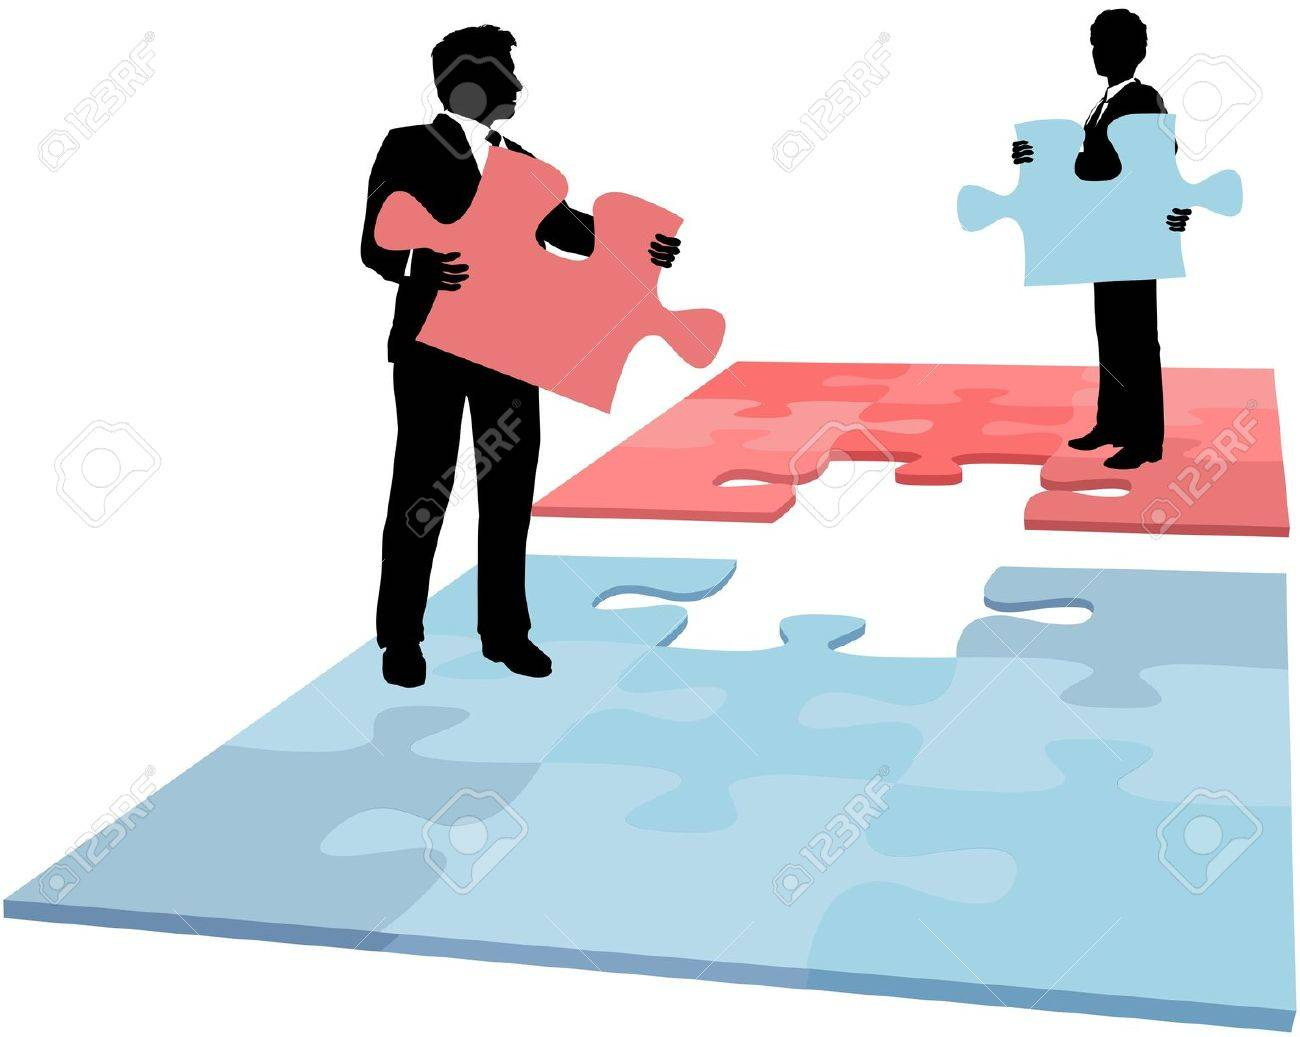 business people hold missing puzzle pieces needed for solution